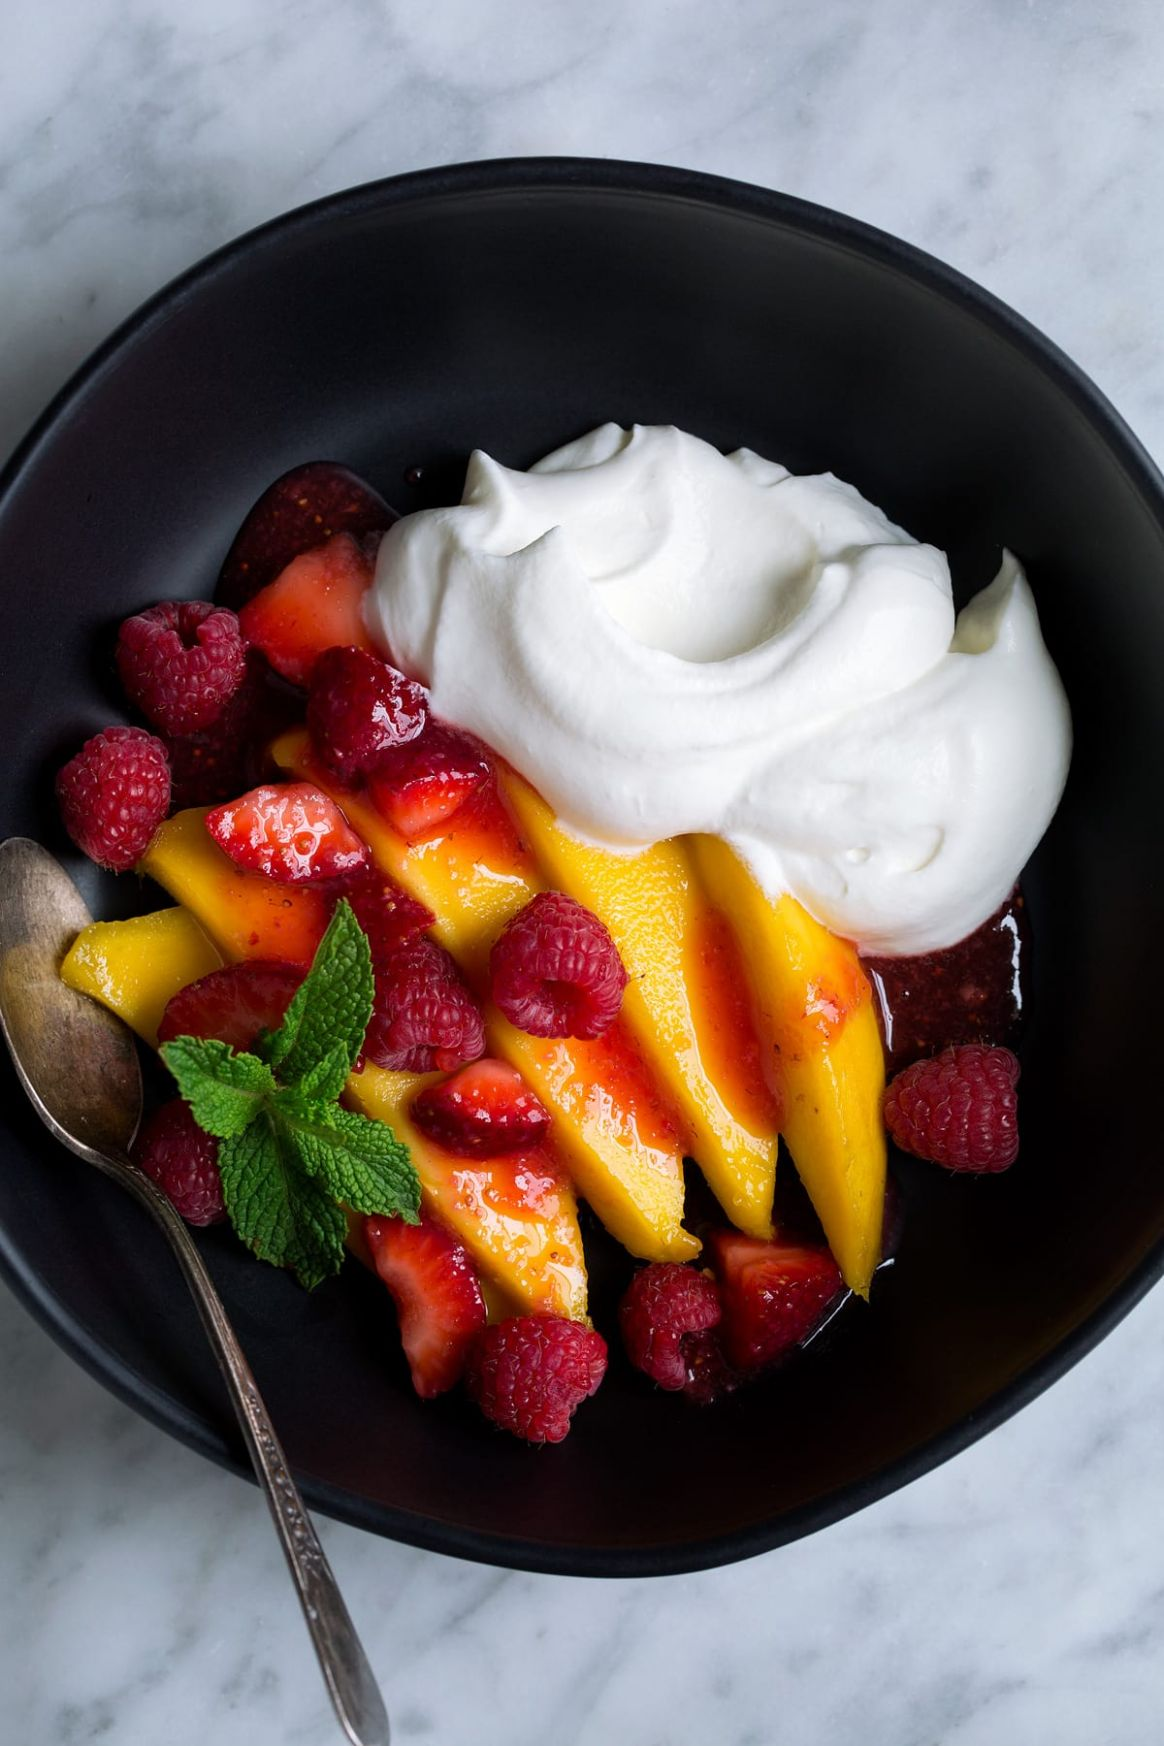 Whipped Cream and 11 Recipes to Use It! - Cooking Classy - Dessert Recipes That Use Heavy Whipping Cream